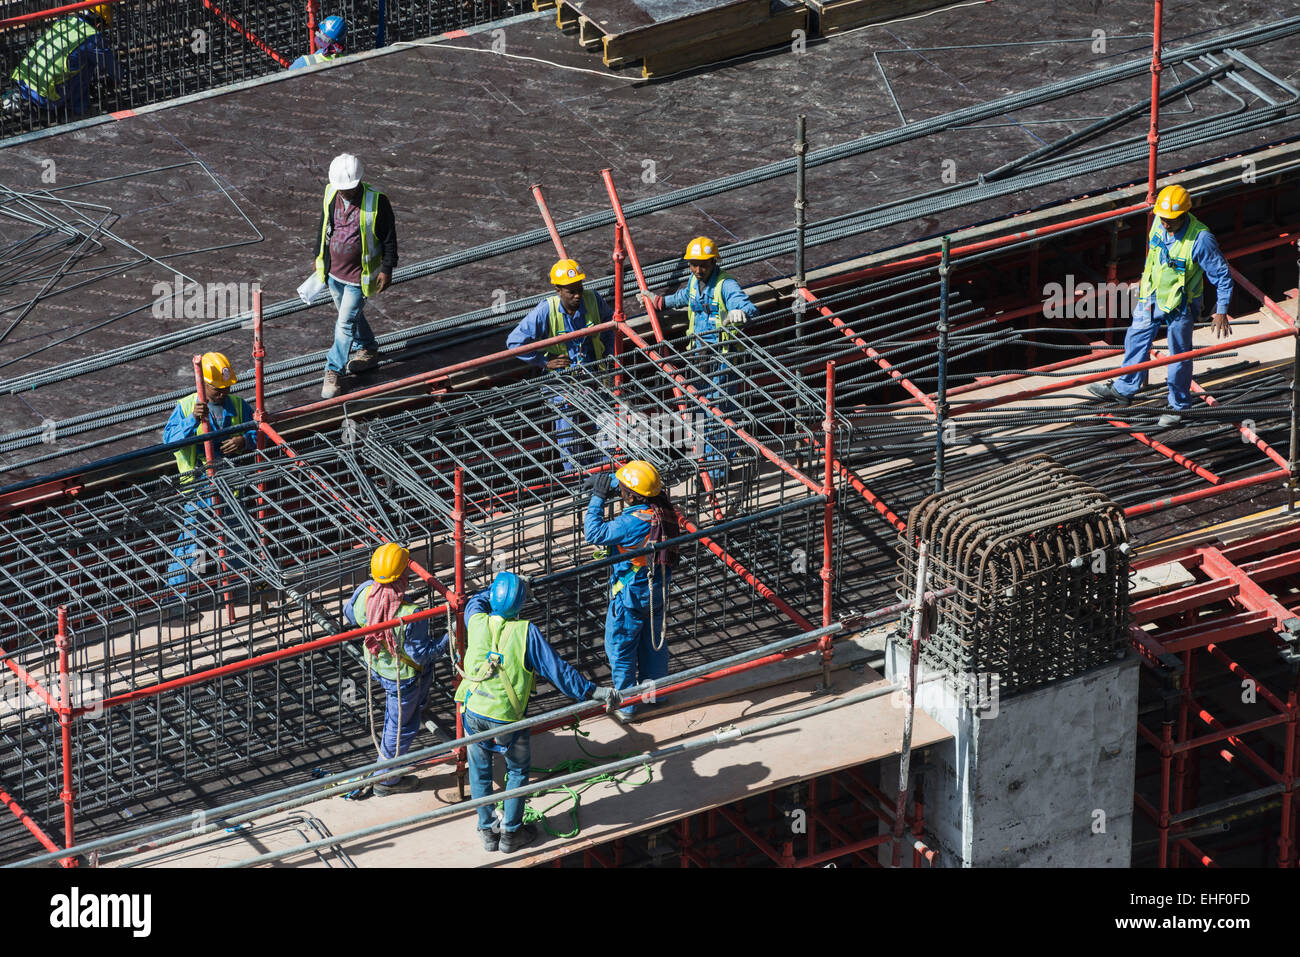 Migrant workers on construction site of high-rise  apartment skyscraper tower in Dubai United Arab Emirates - Stock Image